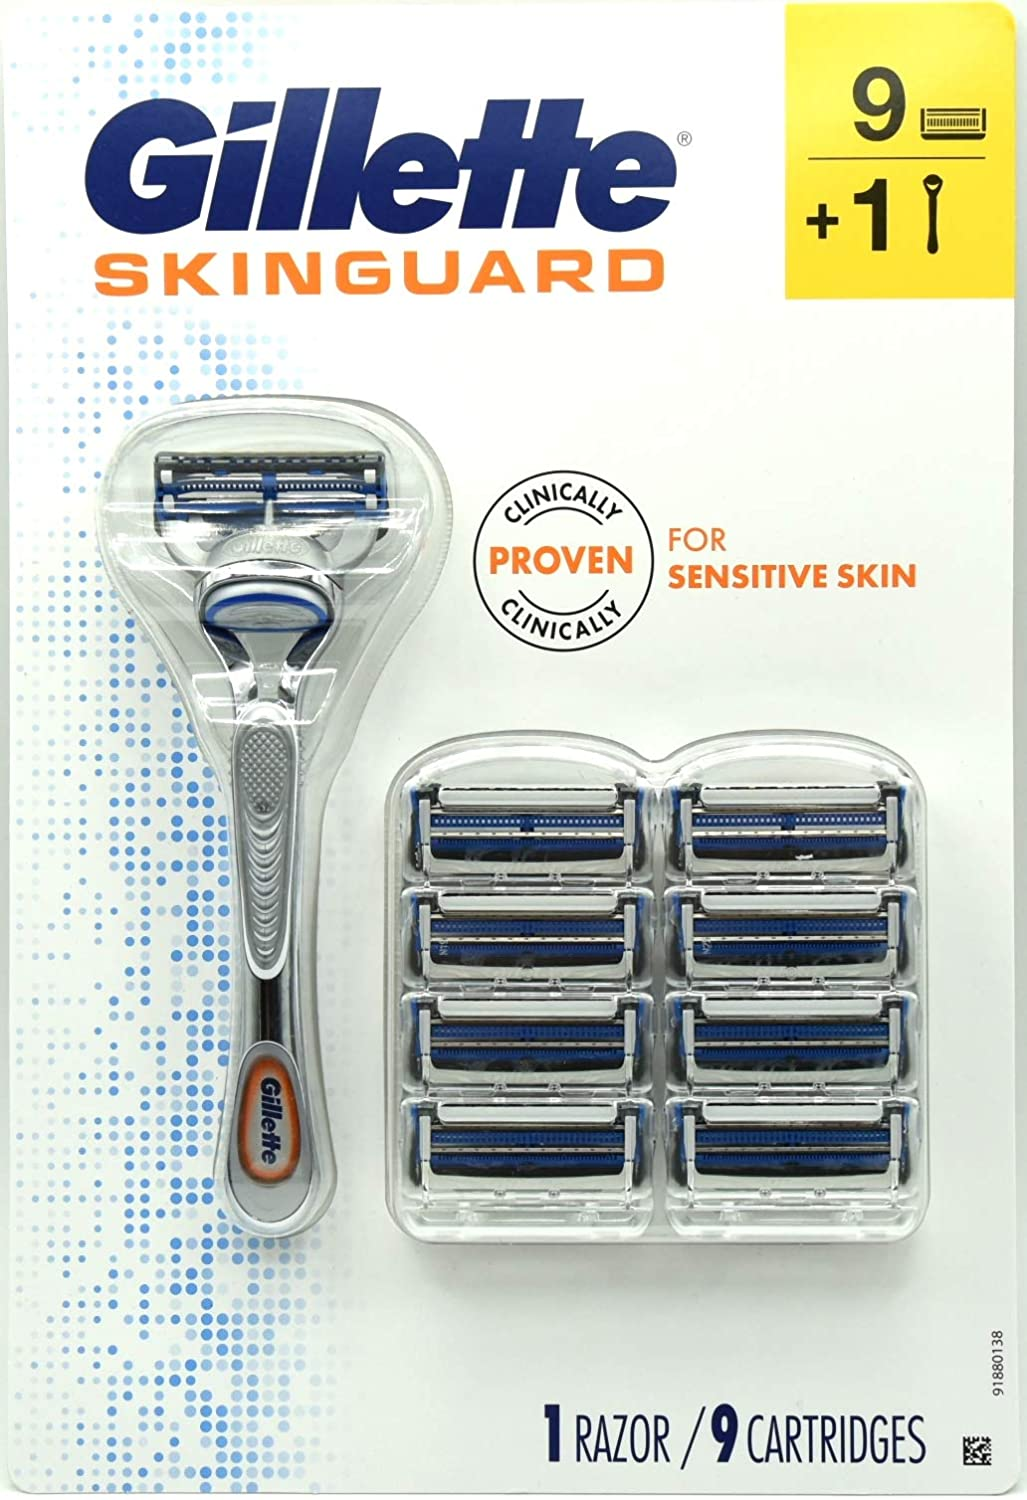 Skinguard 1 Razor Handle and 9 Cartridge Refills